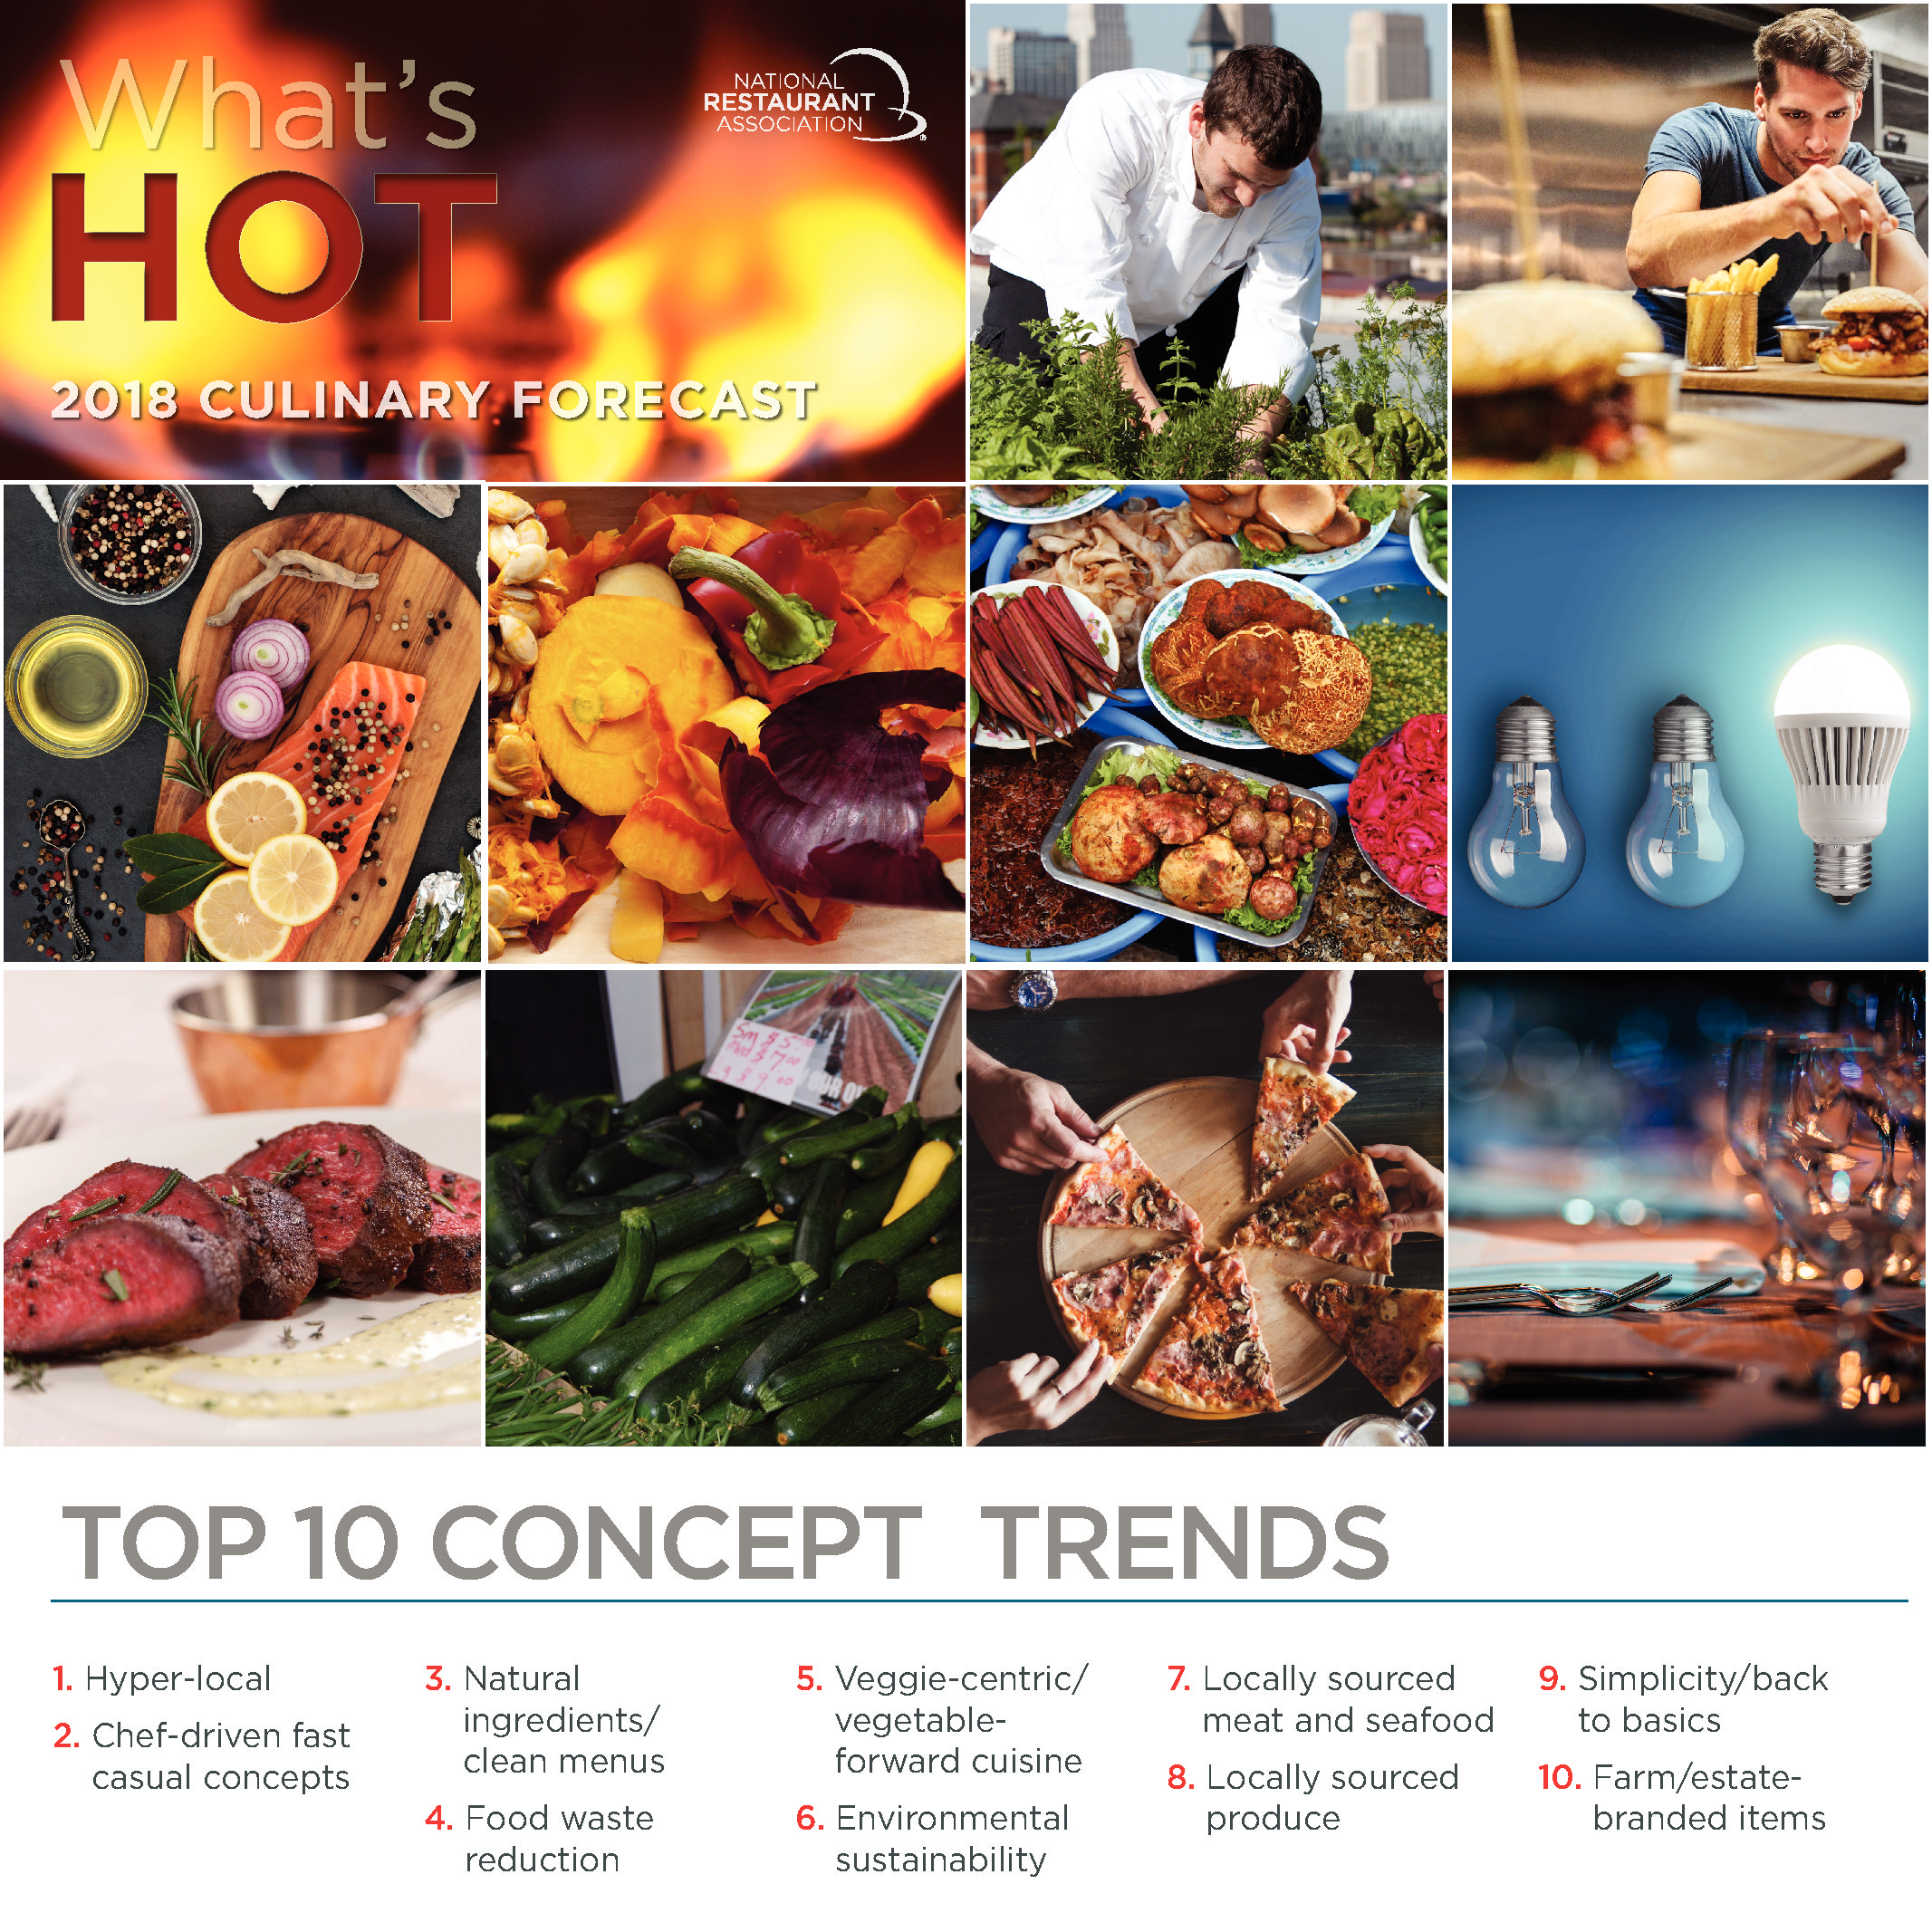 12 Nursery Trends For 2017: Hot Foods For 2018: Ethnic Dishes, Veggie 'Carbs', Kid